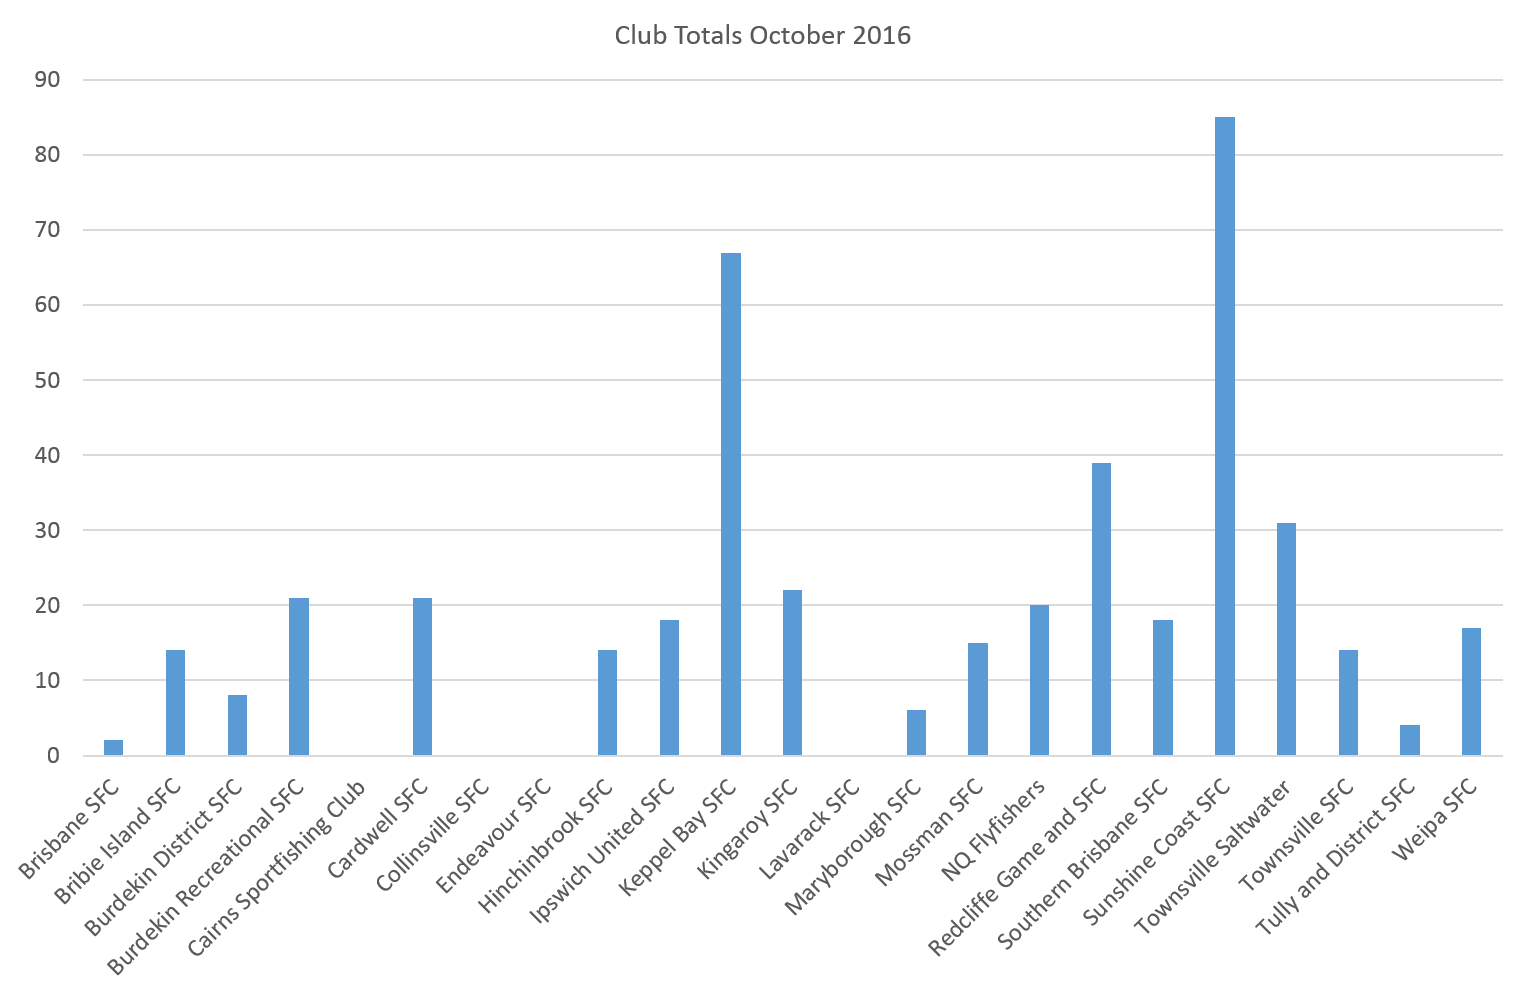 club-totals-october-2016